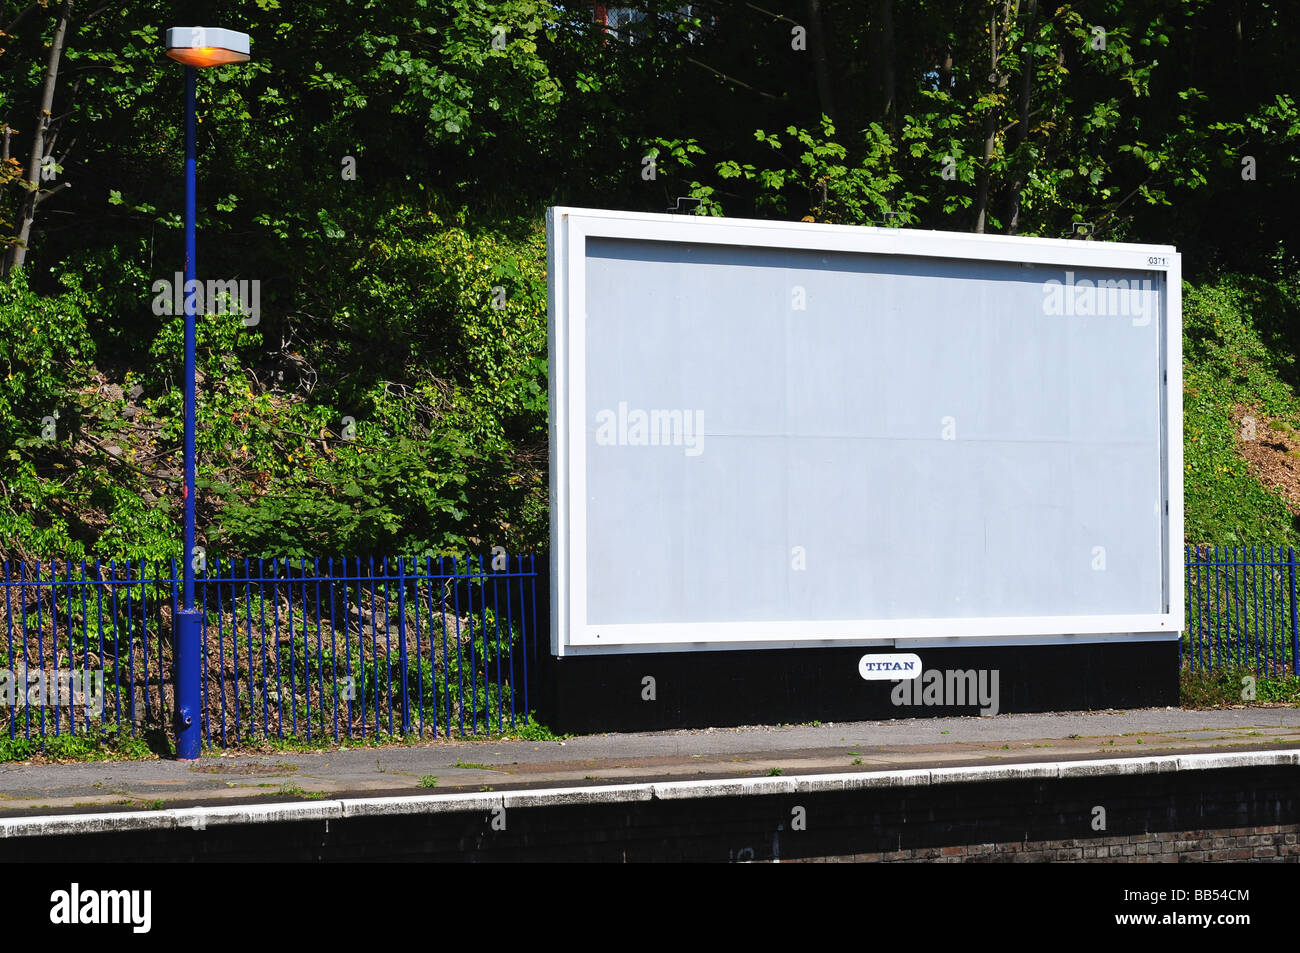 Empty advertising billboard on a station platform - Stock Image